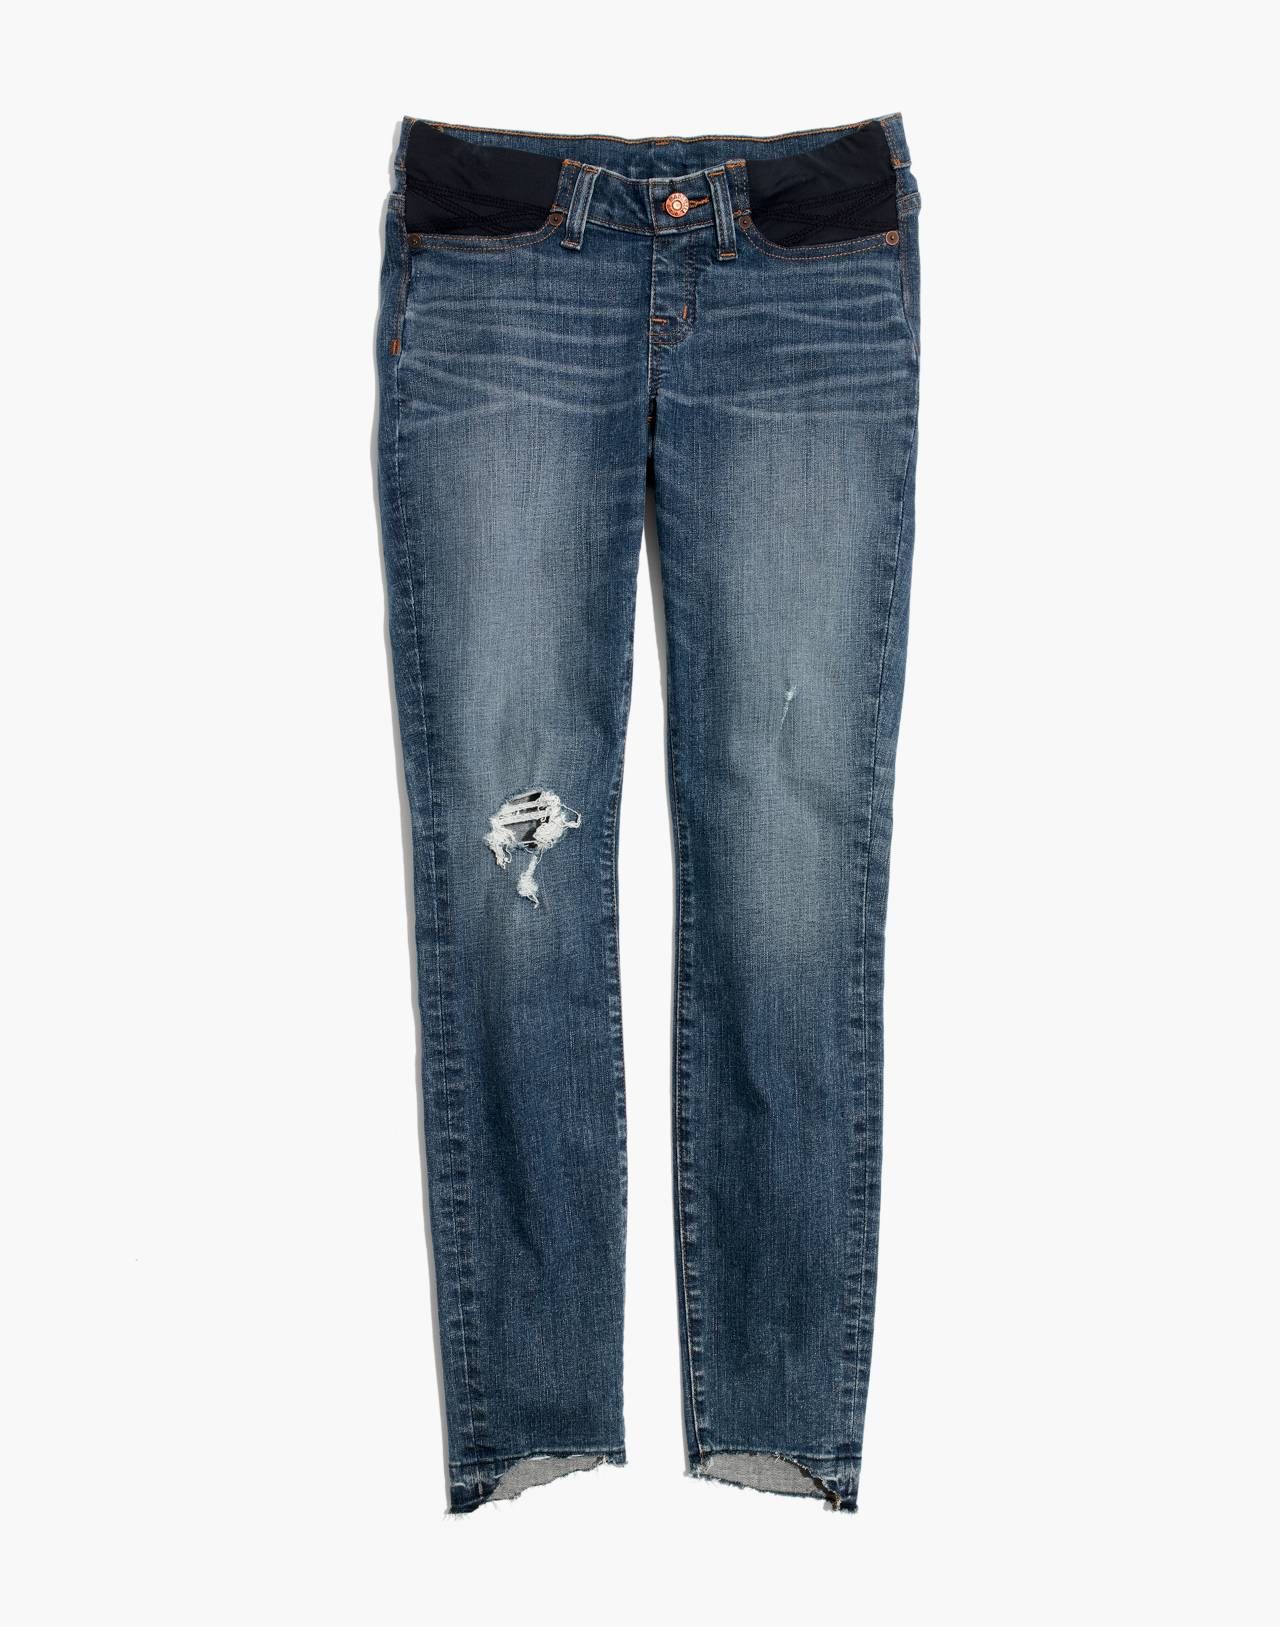 Maternity Side-Panel Skinny Jeans in Everton Wash: Adjustable Edition in everton image 4